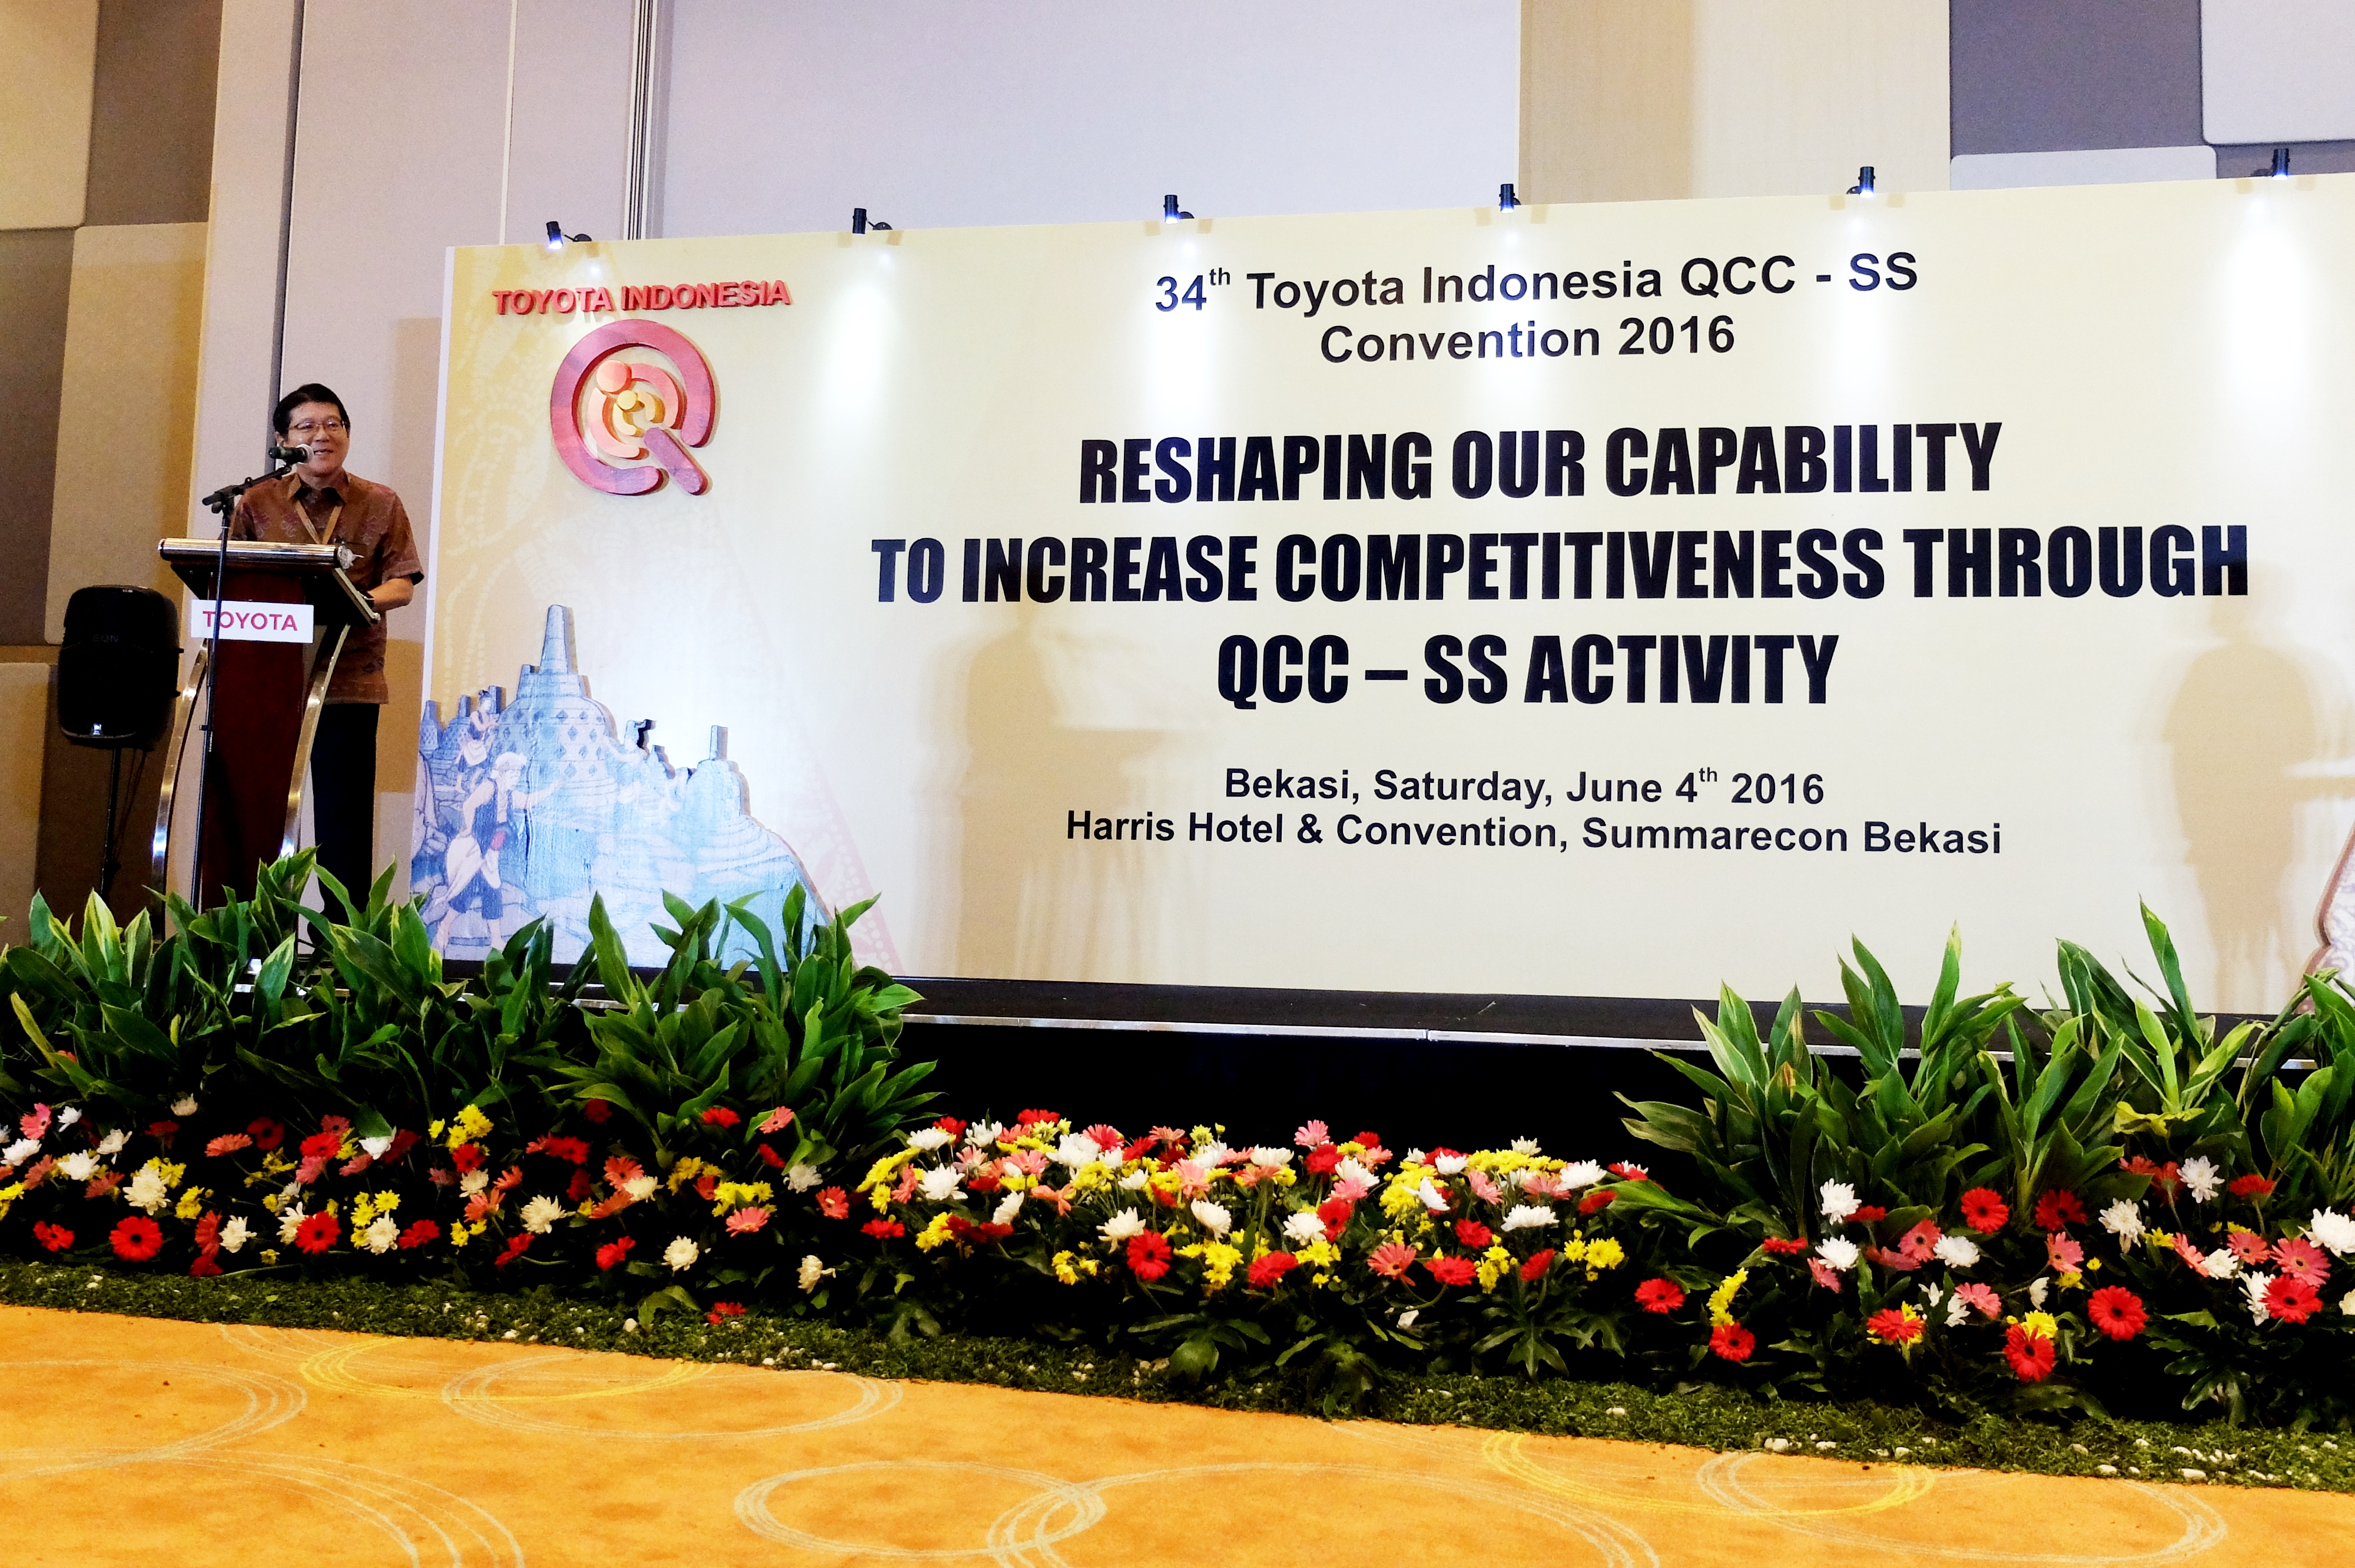 34th Toyota Indonesia QCC-SS Convention 2016